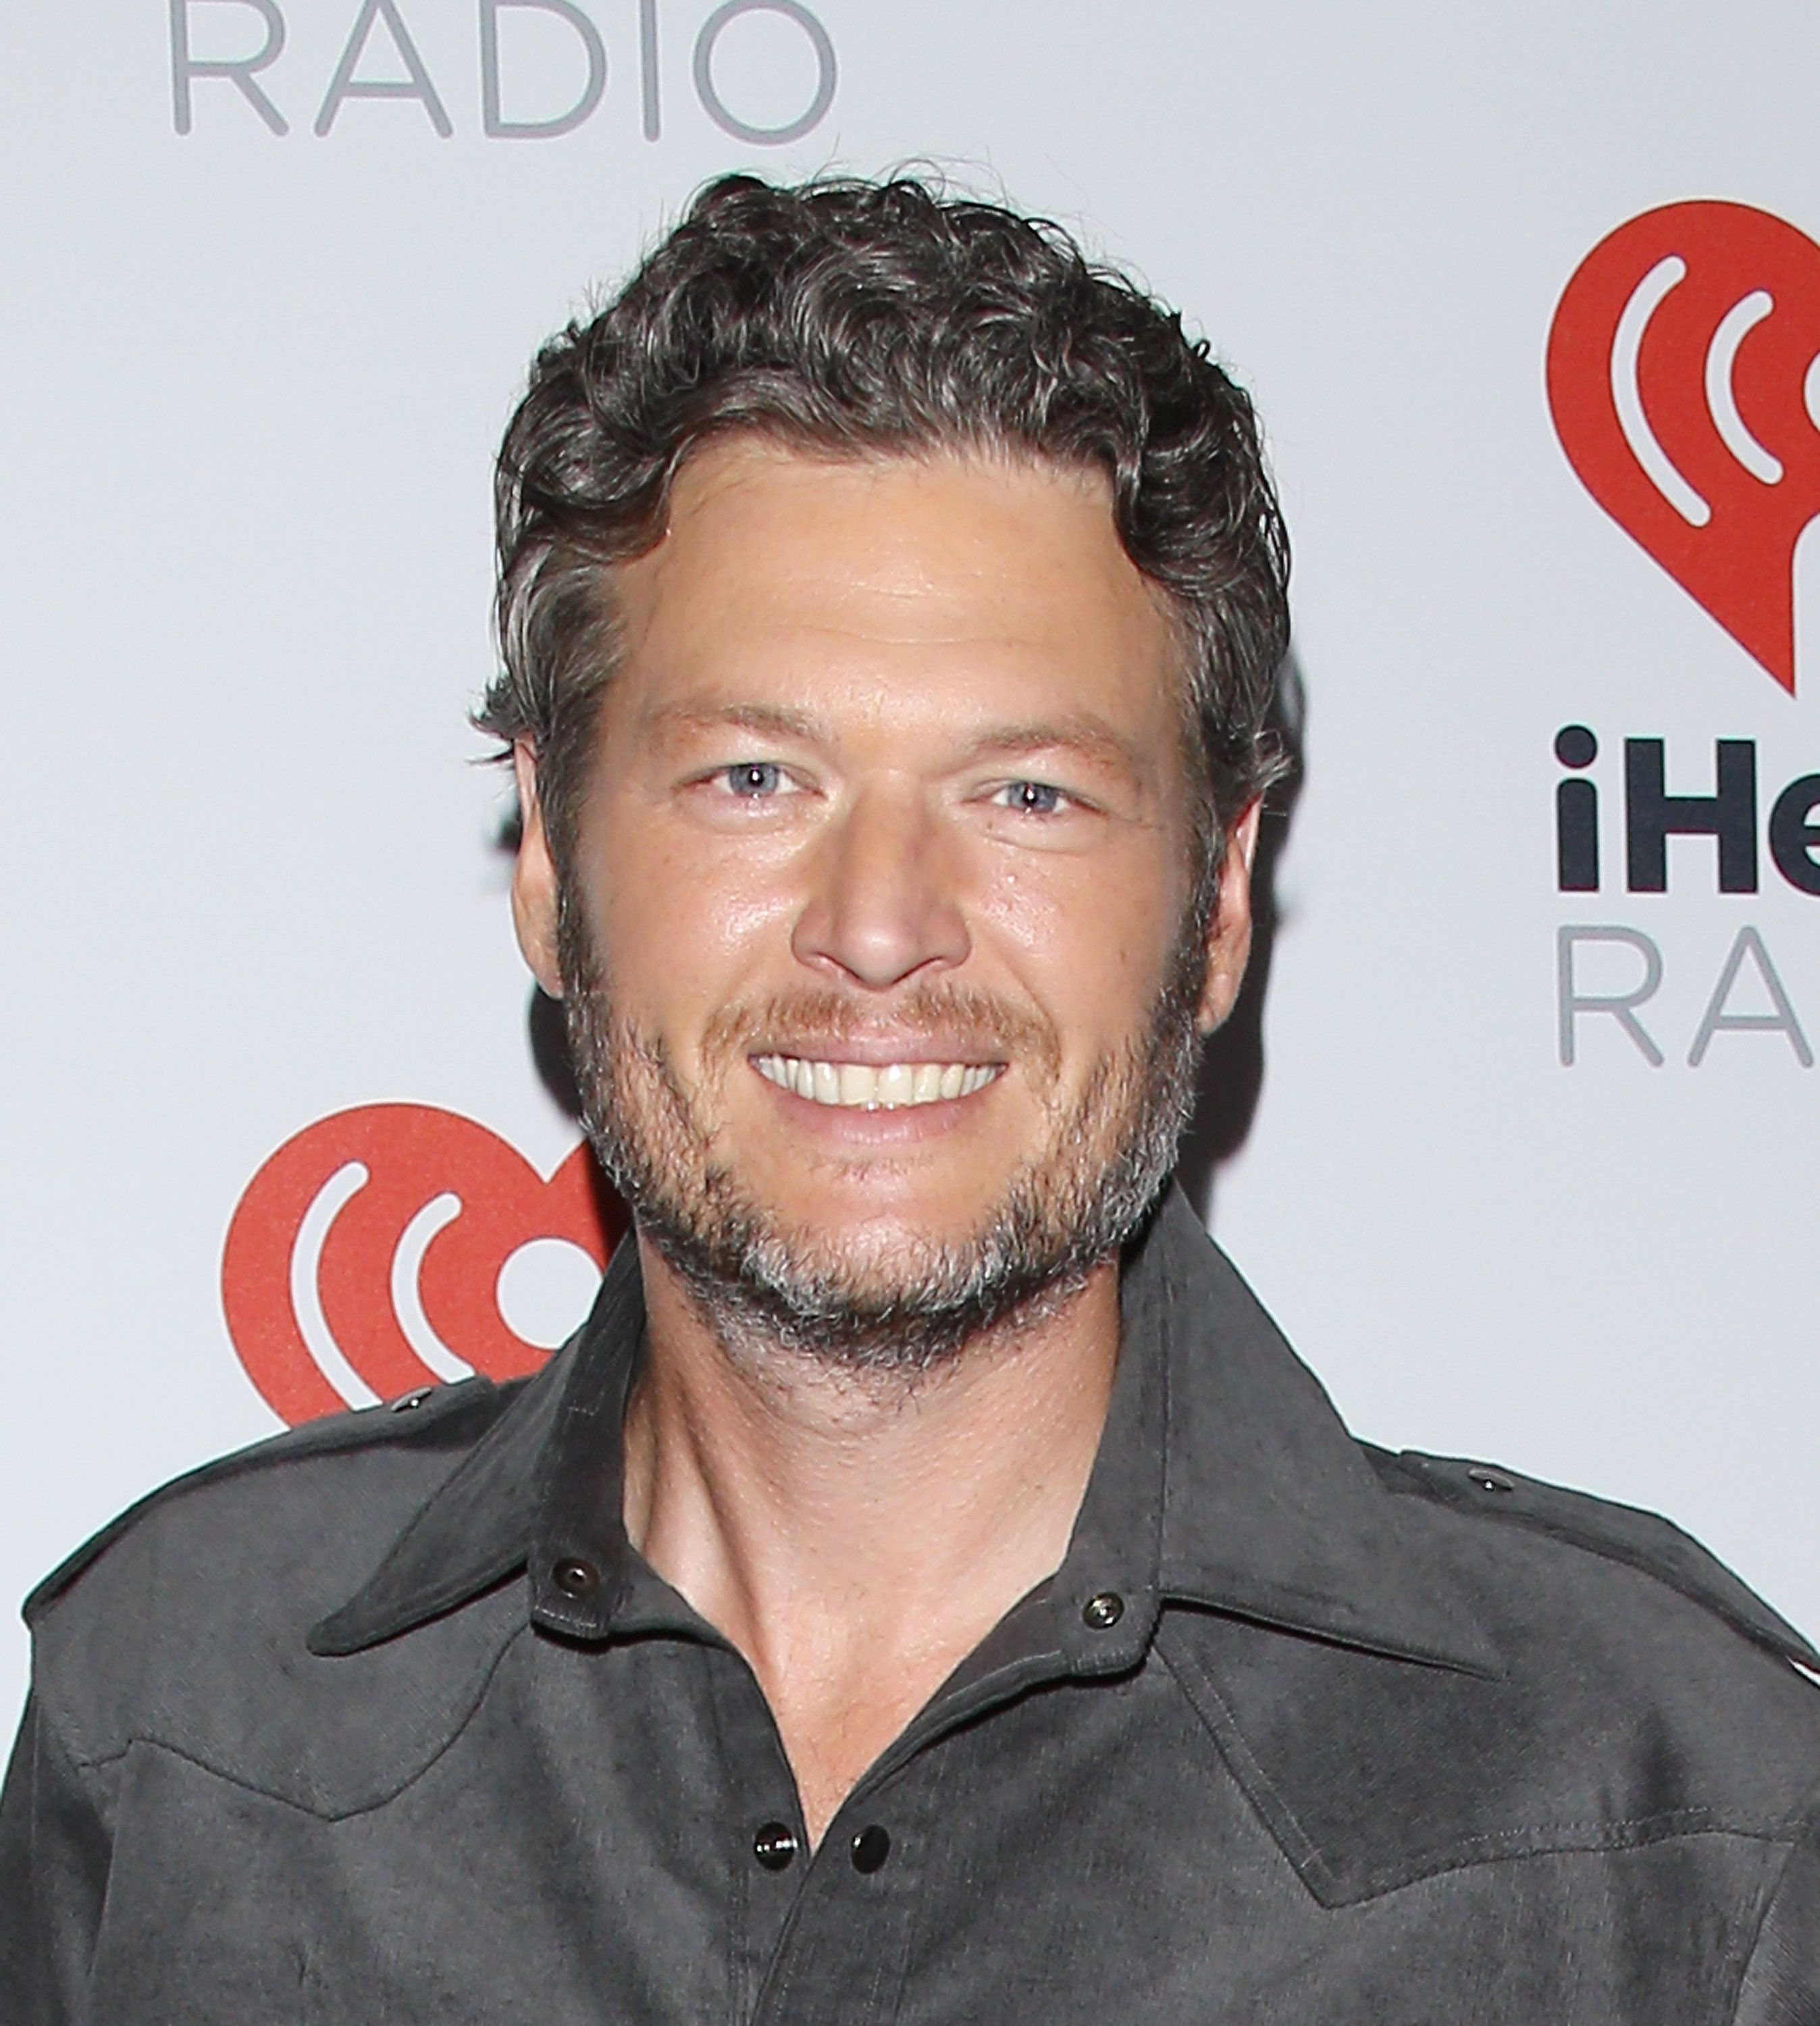 LAS VEGAS, NV - SEPTEMBER 19:  Blake Shelton attends the press room during the 2015 iHeartRadio Music Festival held at MGM Grand Arena on September 19, 2015 in Las Vegas, Nevada.  (Photo by Michael Tran/WireImage)